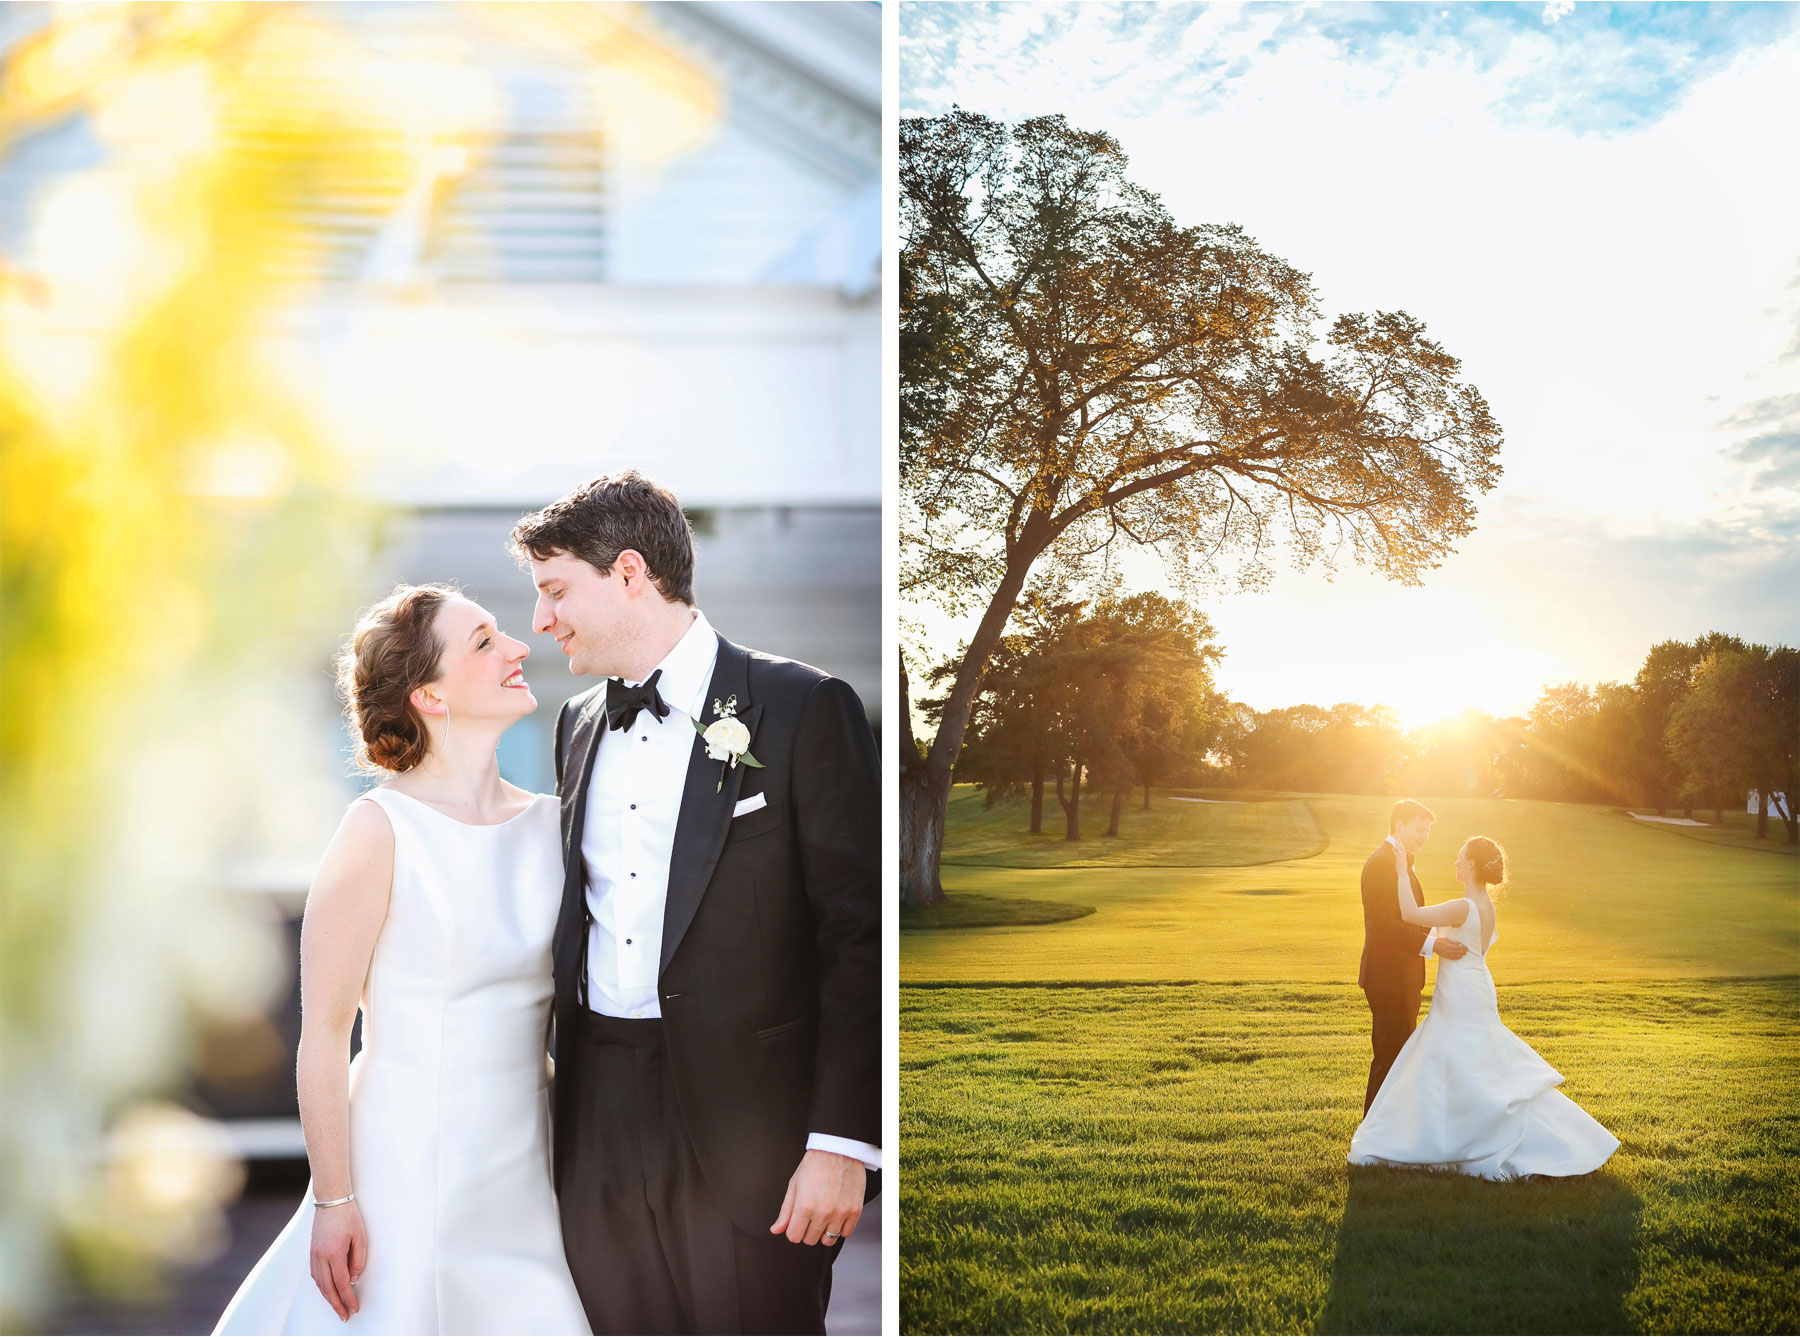 13-Minneapolis-Minnesota-Wedding-Andrew-Vick-Photography-Minikahda-Country-Club-Outdoor-Summer-Bride-Groom-Golf-Course-Golden-Hour-Ashton-and-Kevin.jpg